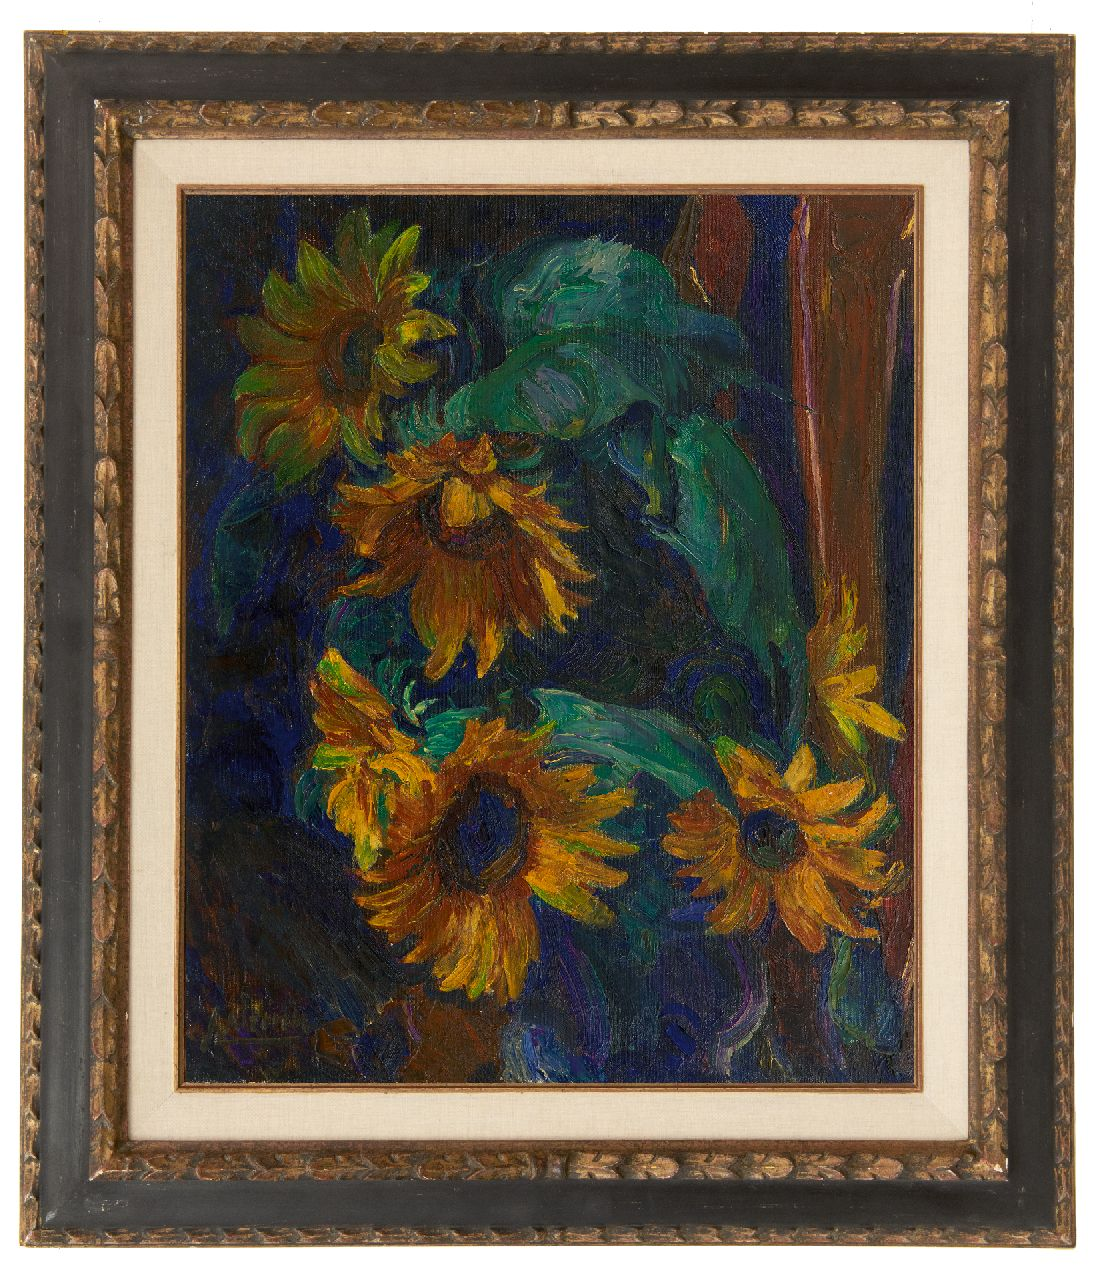 Altink J.  | Jan Altink, Sunflowers, oil on canvas 56.5 x 46.5 cm, signed l.l.